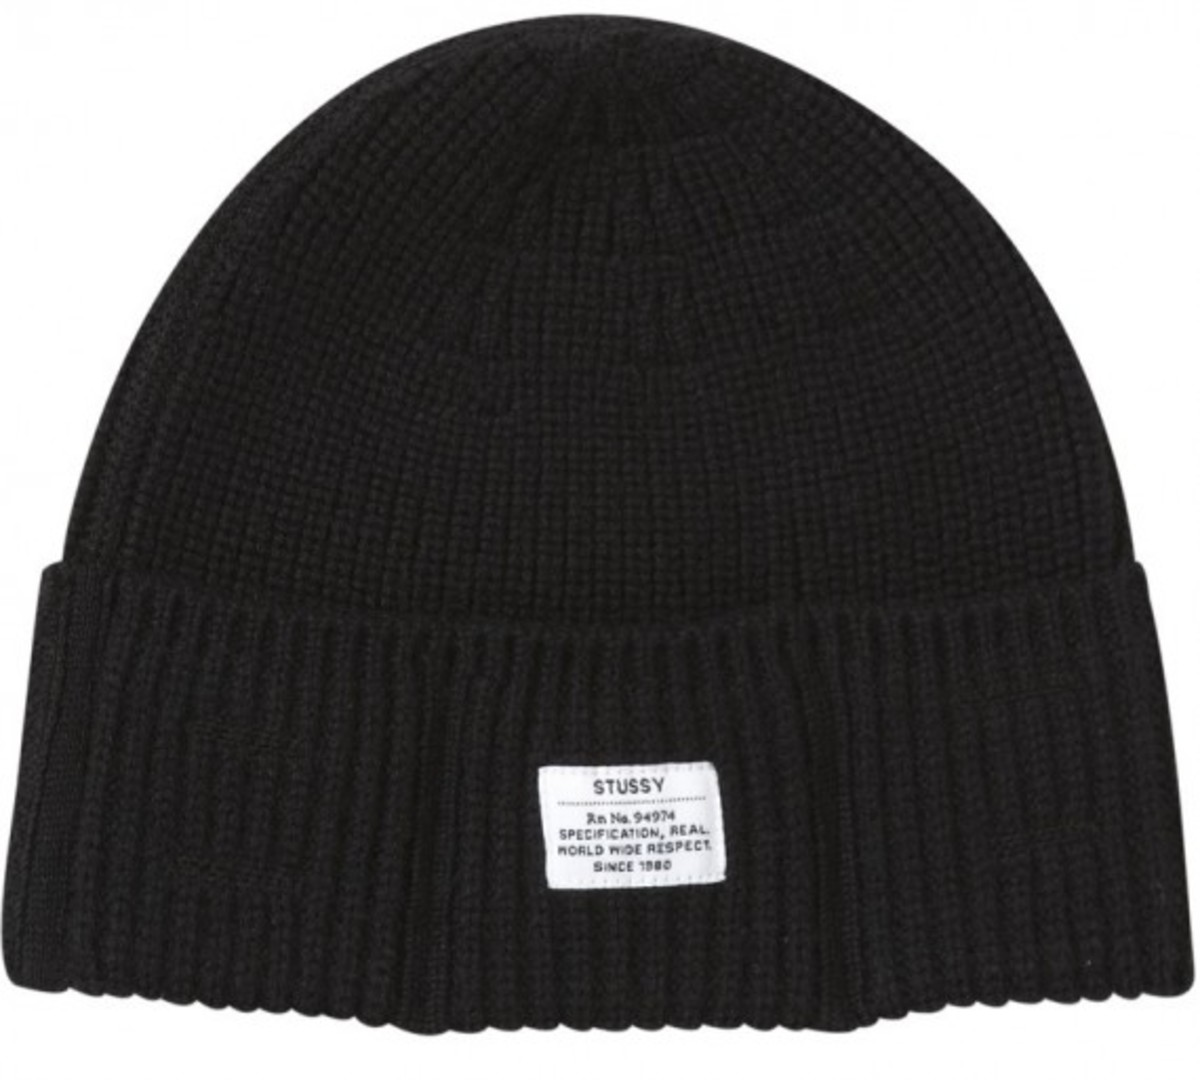 stussy-fall-2011-surplus-collection-surplus-stitch-cuff-hat-01